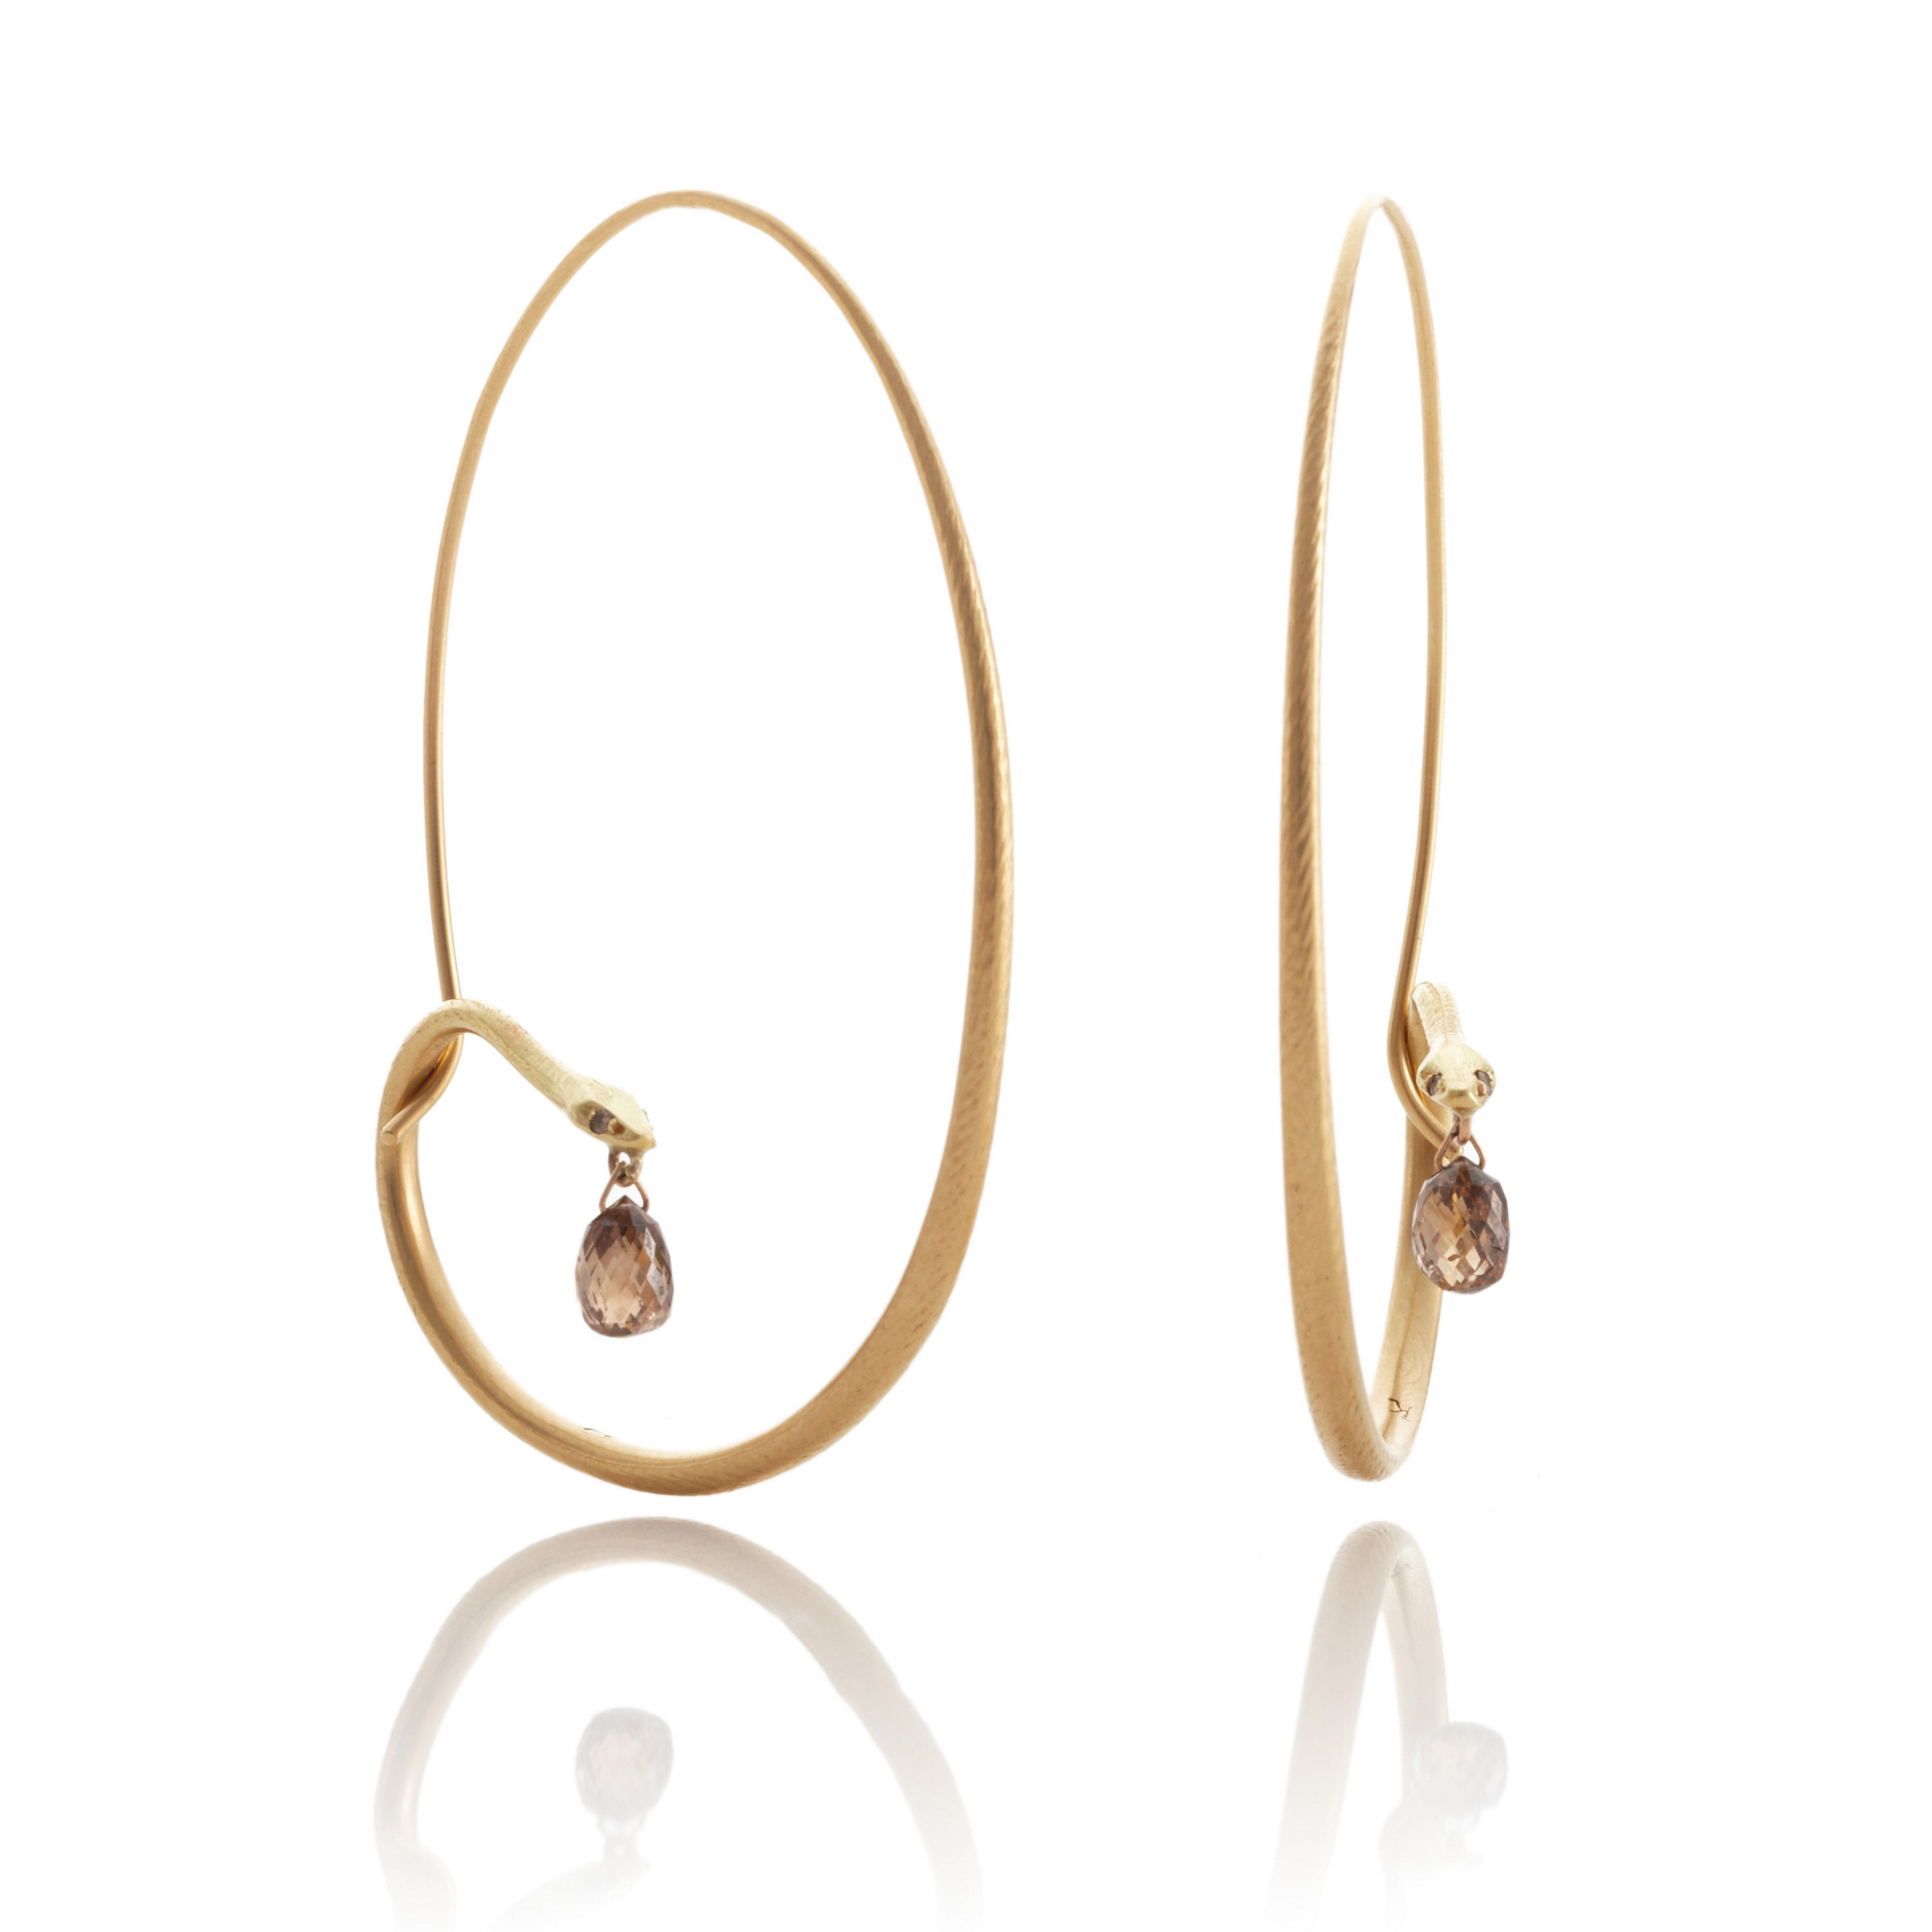 Citaten Hoop Kiss : Gabriella kiss large gold diamond snake hoop earrings